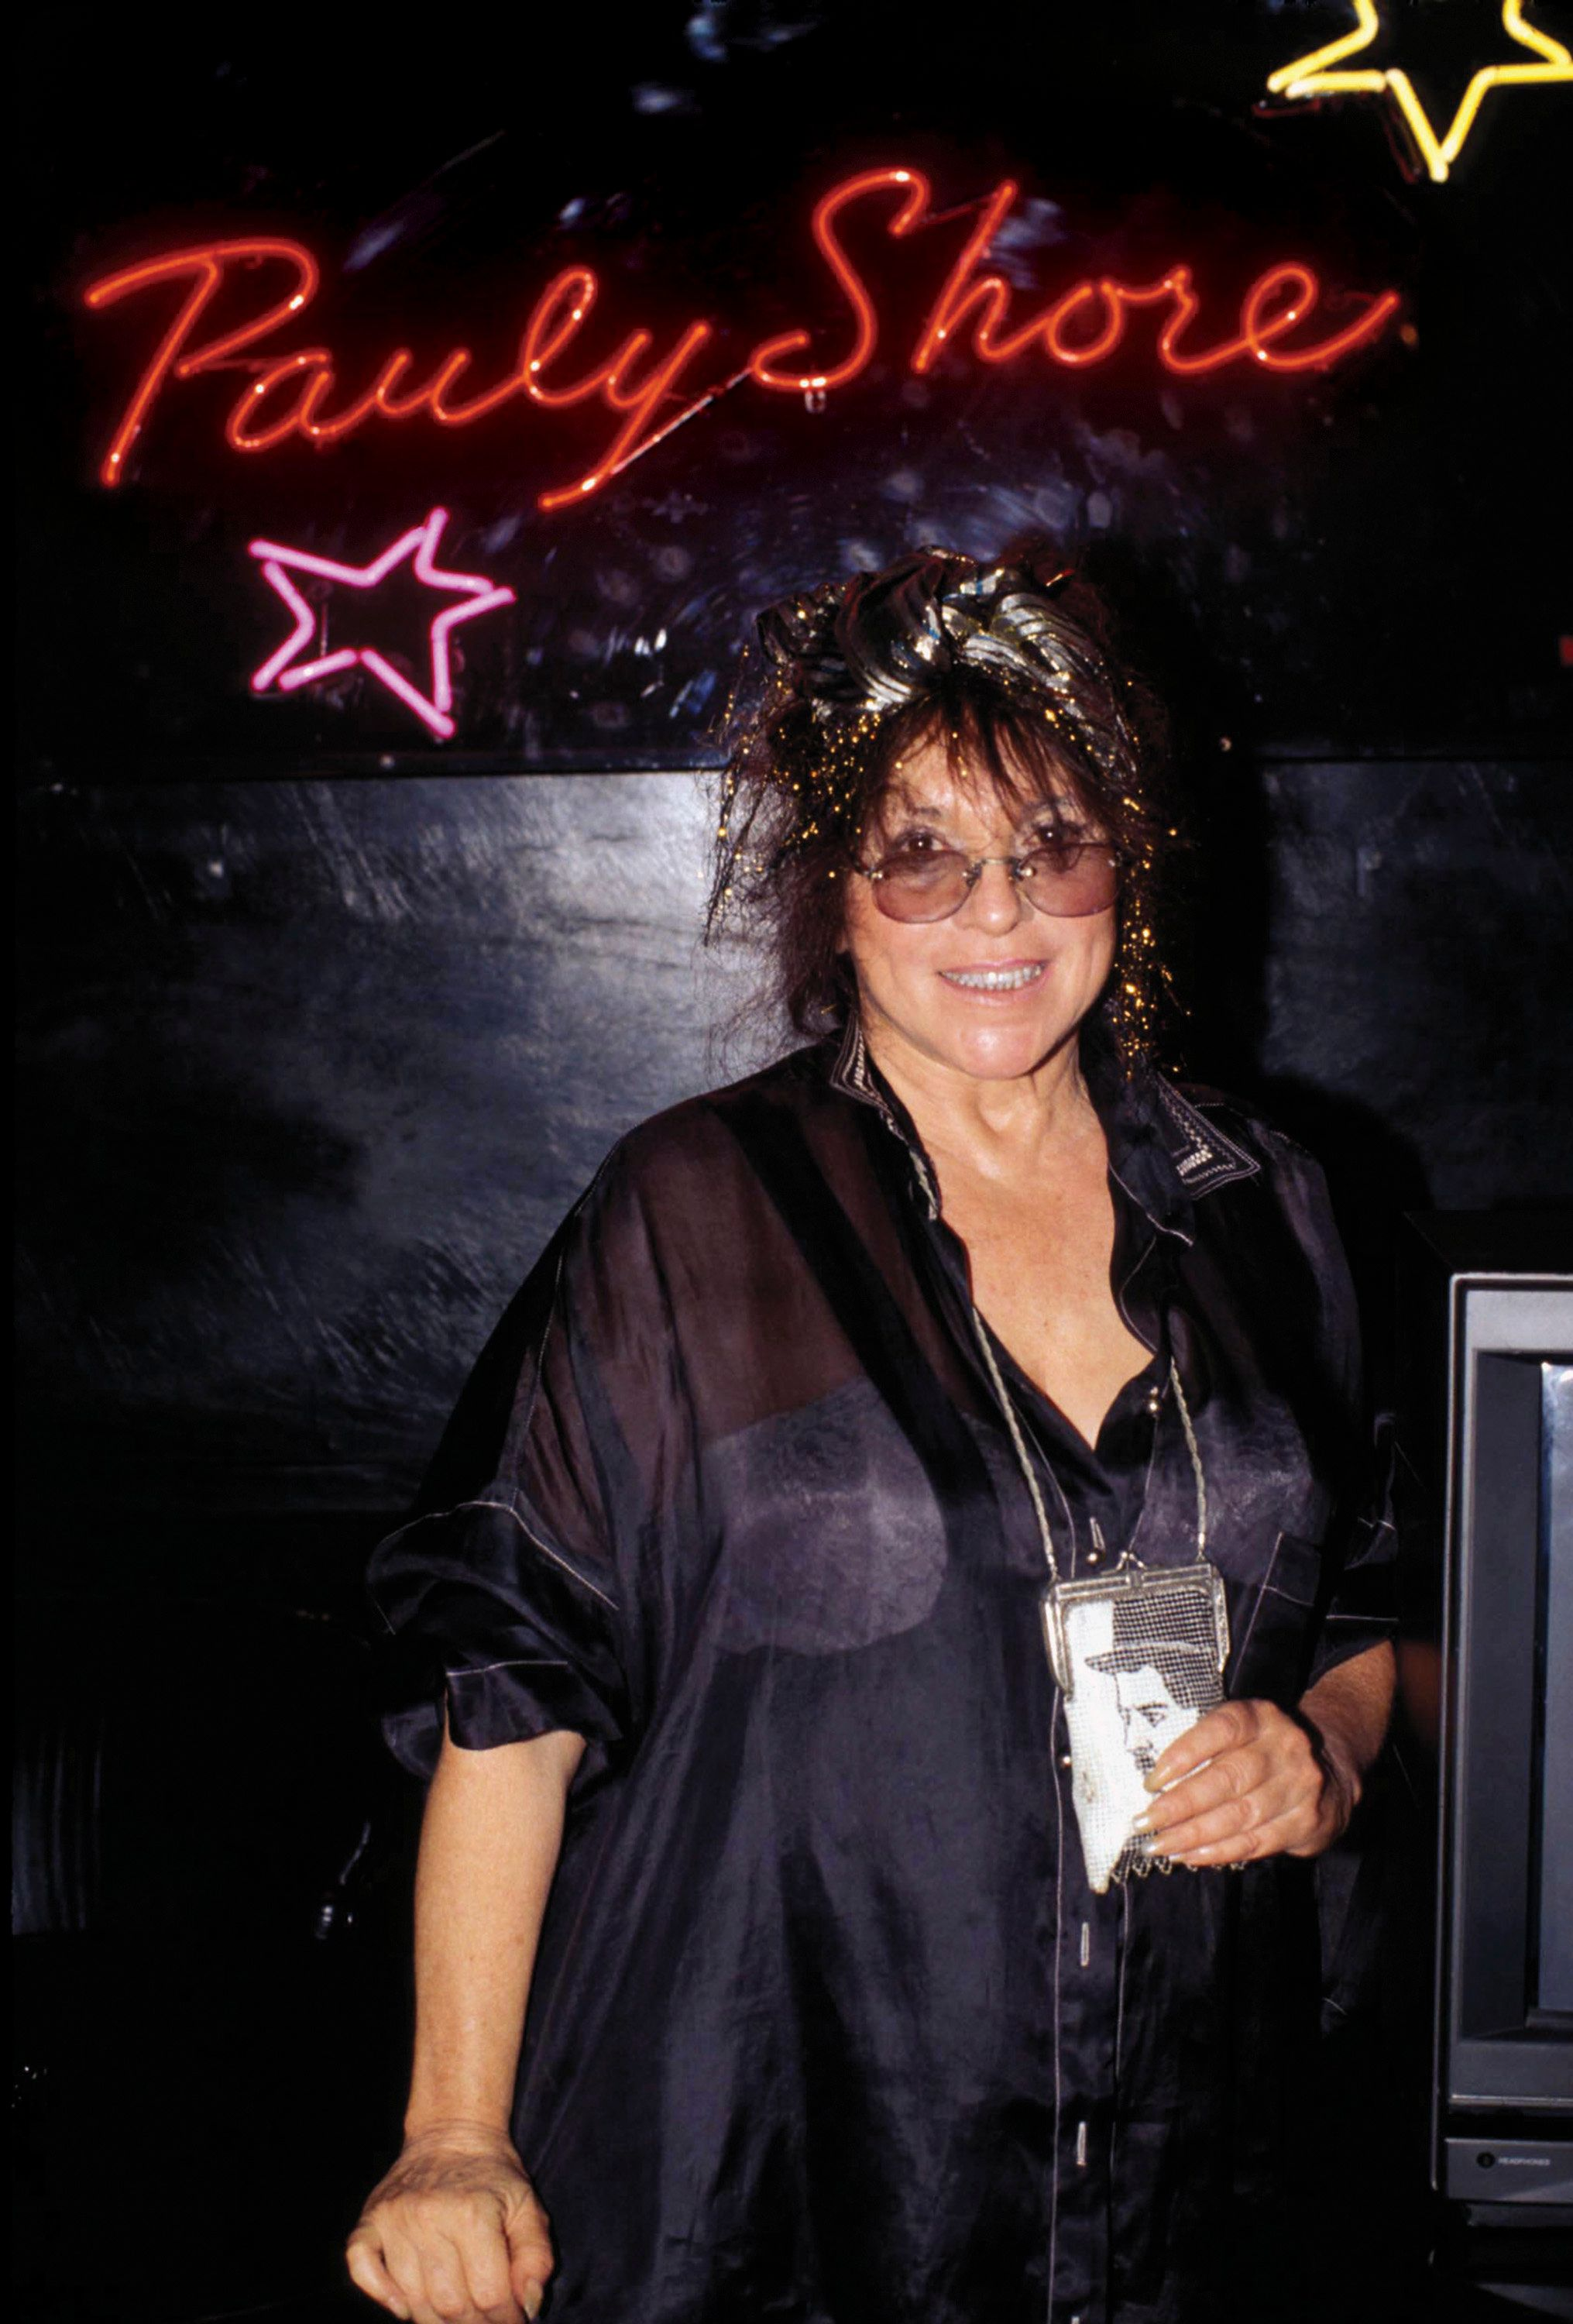 Comedy Store owner Mitzi Shore died on Wednesday at the age of 87.